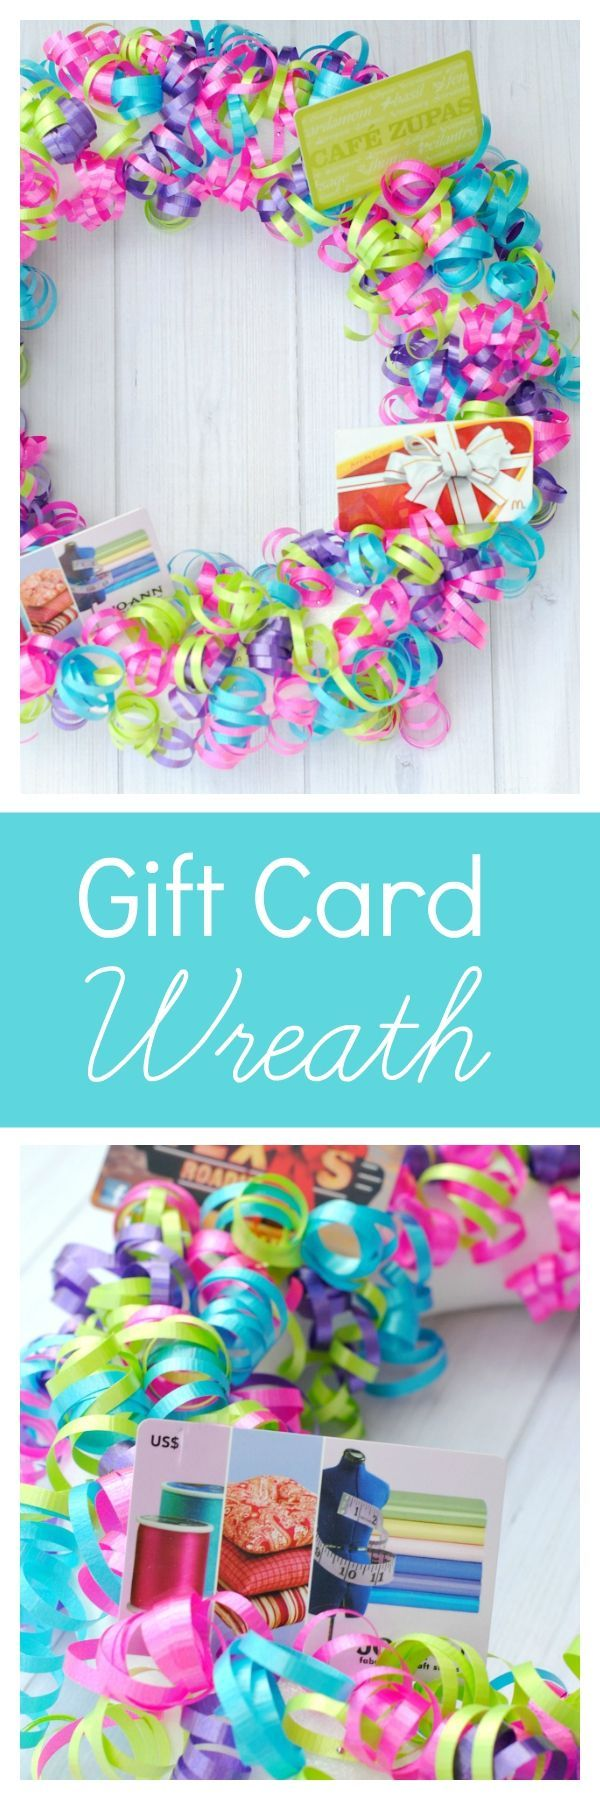 Cute Gift Idea-Make a festive wreath and fill it with gift cards!